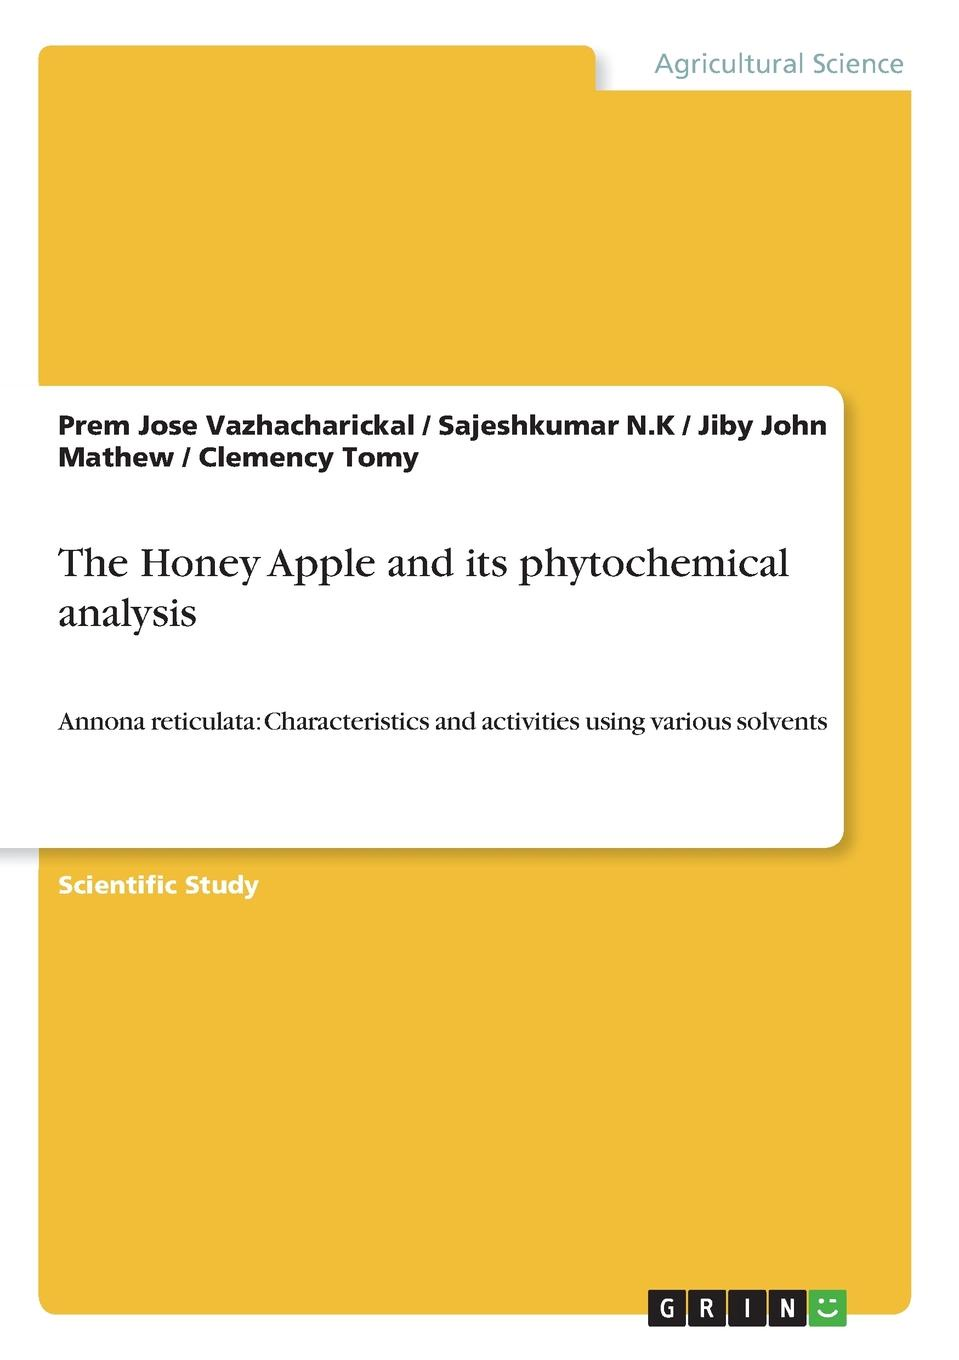 Jiby John Mathew, Prem Jose Vazhacharickal, Sajeshkumar N.K The Honey Apple and its phytochemical analysis jiby john mathew prem jose vazhacharickal sajeshkumar n k the honey apple and its phytochemical analysis